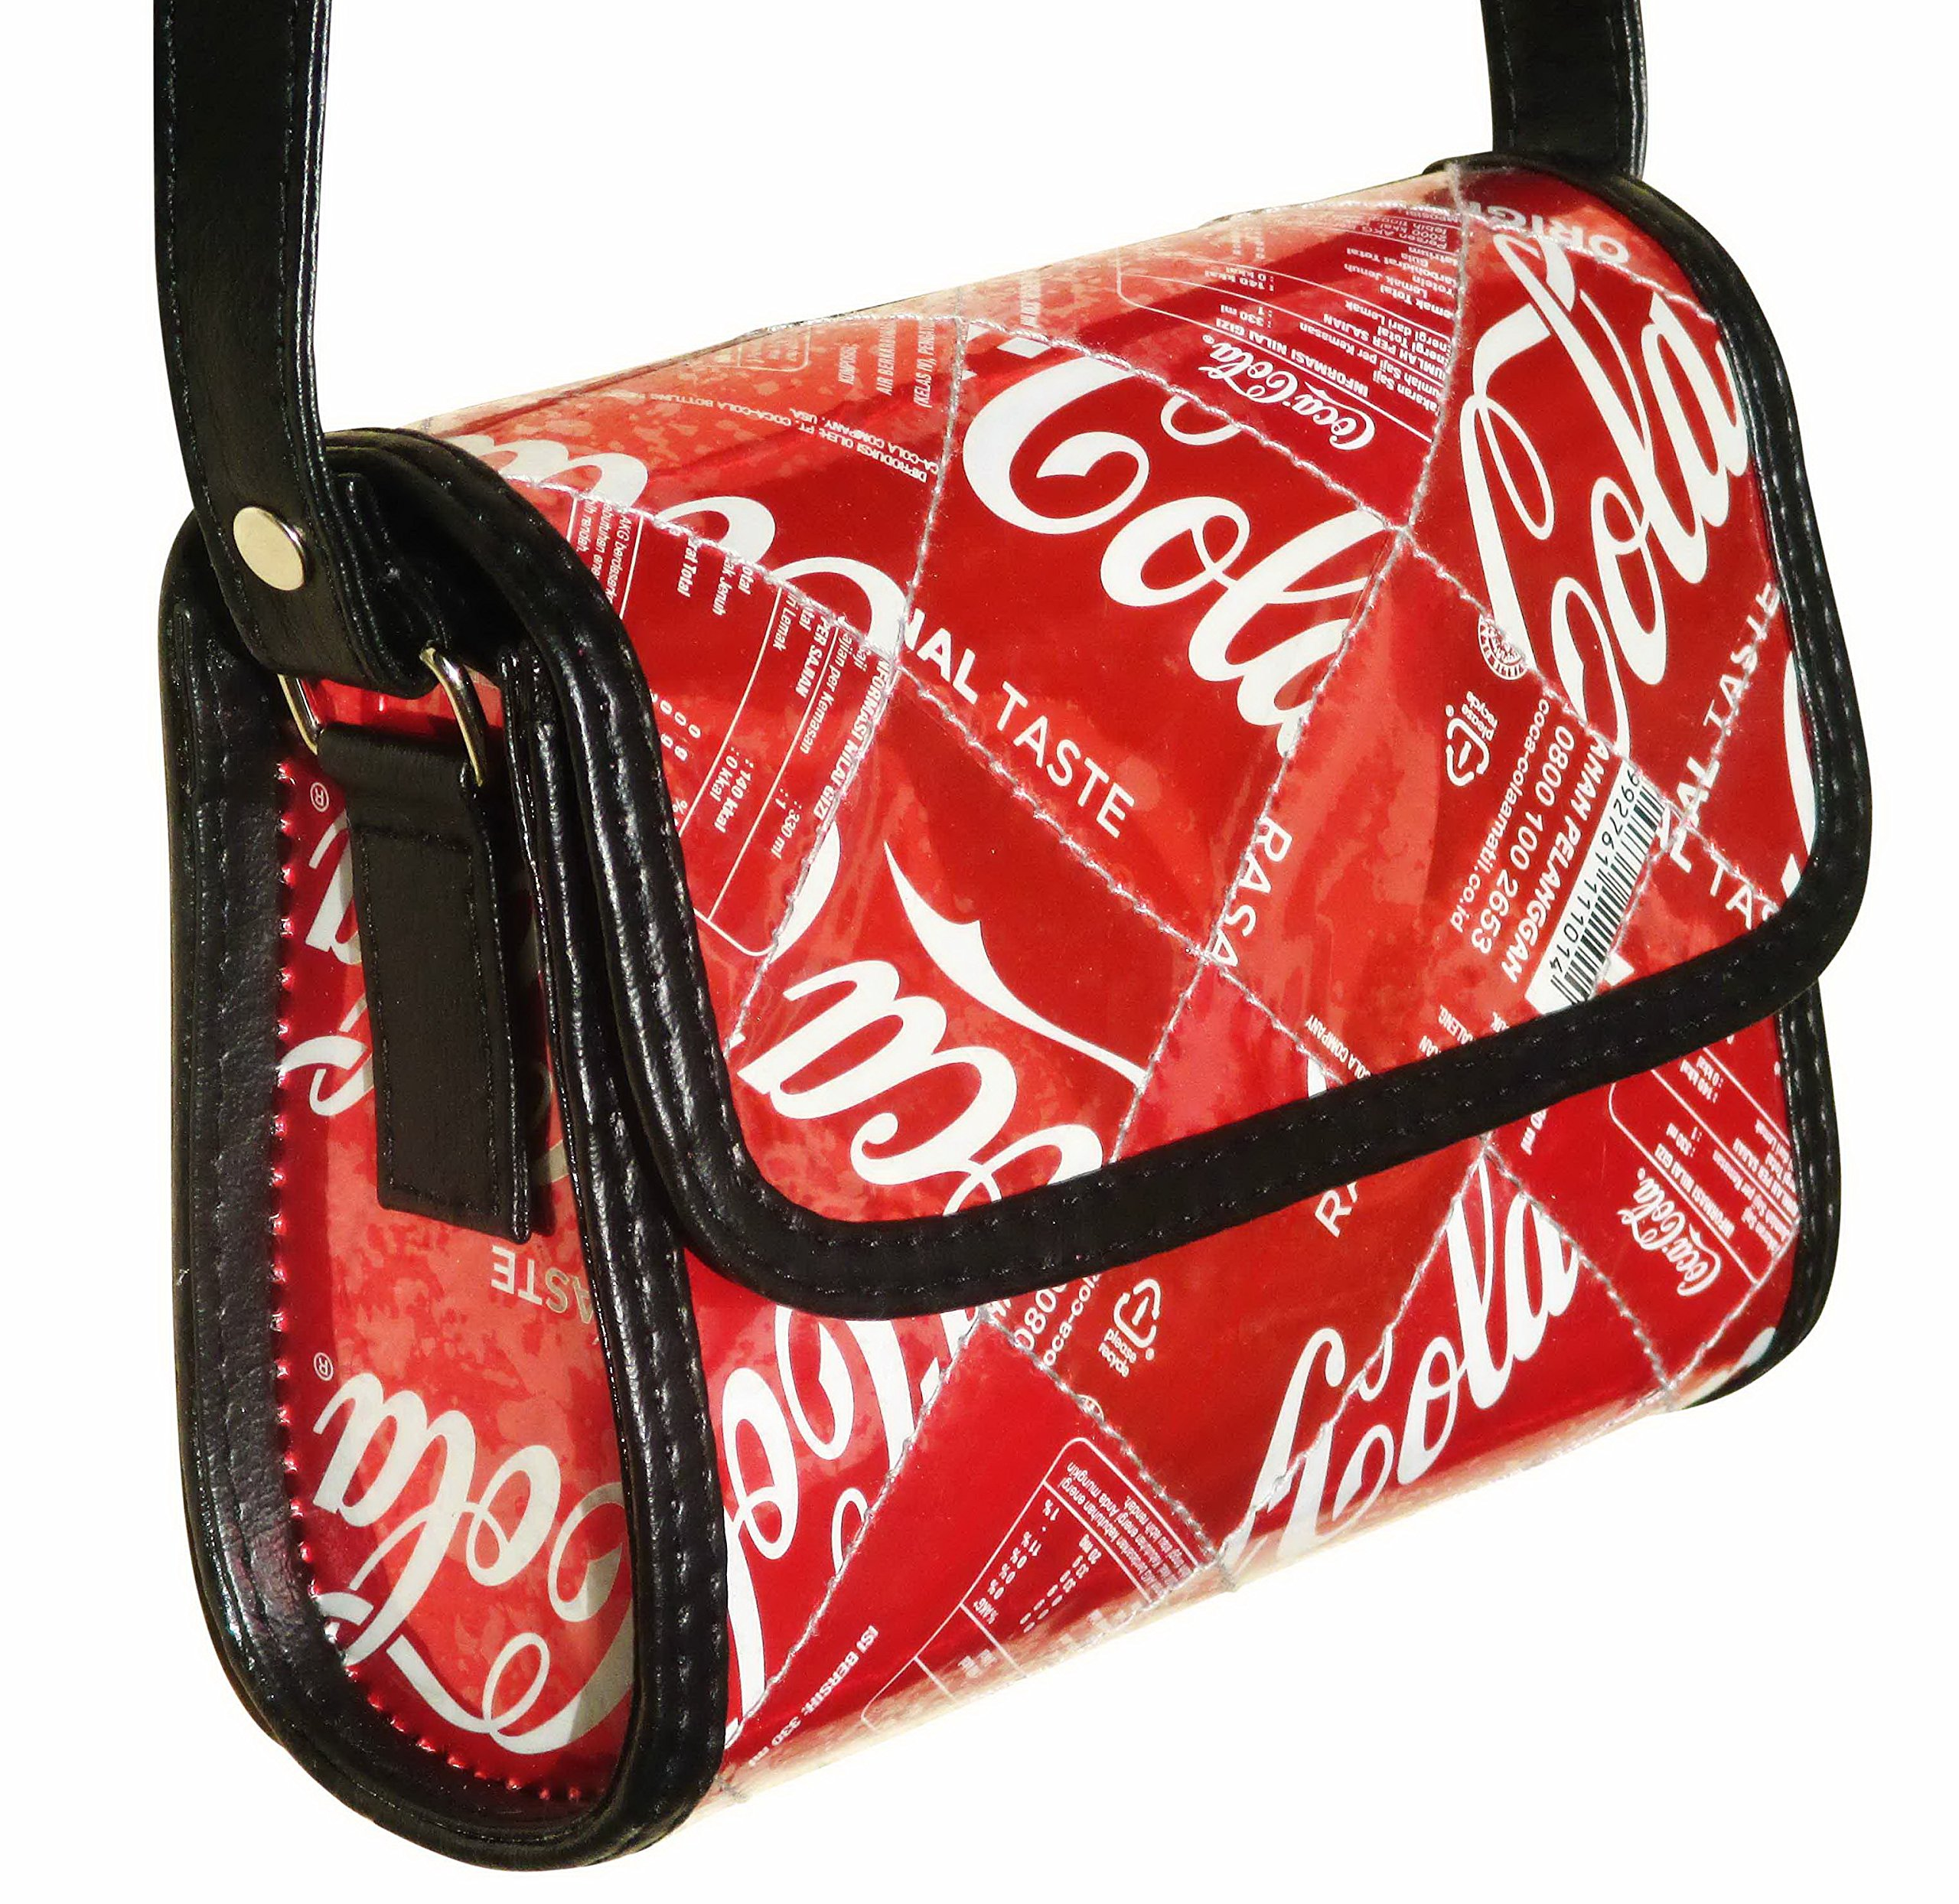 Small cross-body made from Coca Cola can - FREE SHIPPING - upcycled upcycle upcycling recycling different smart person vegetarians products eco friendly people enthusiasts enthusiast beautiful